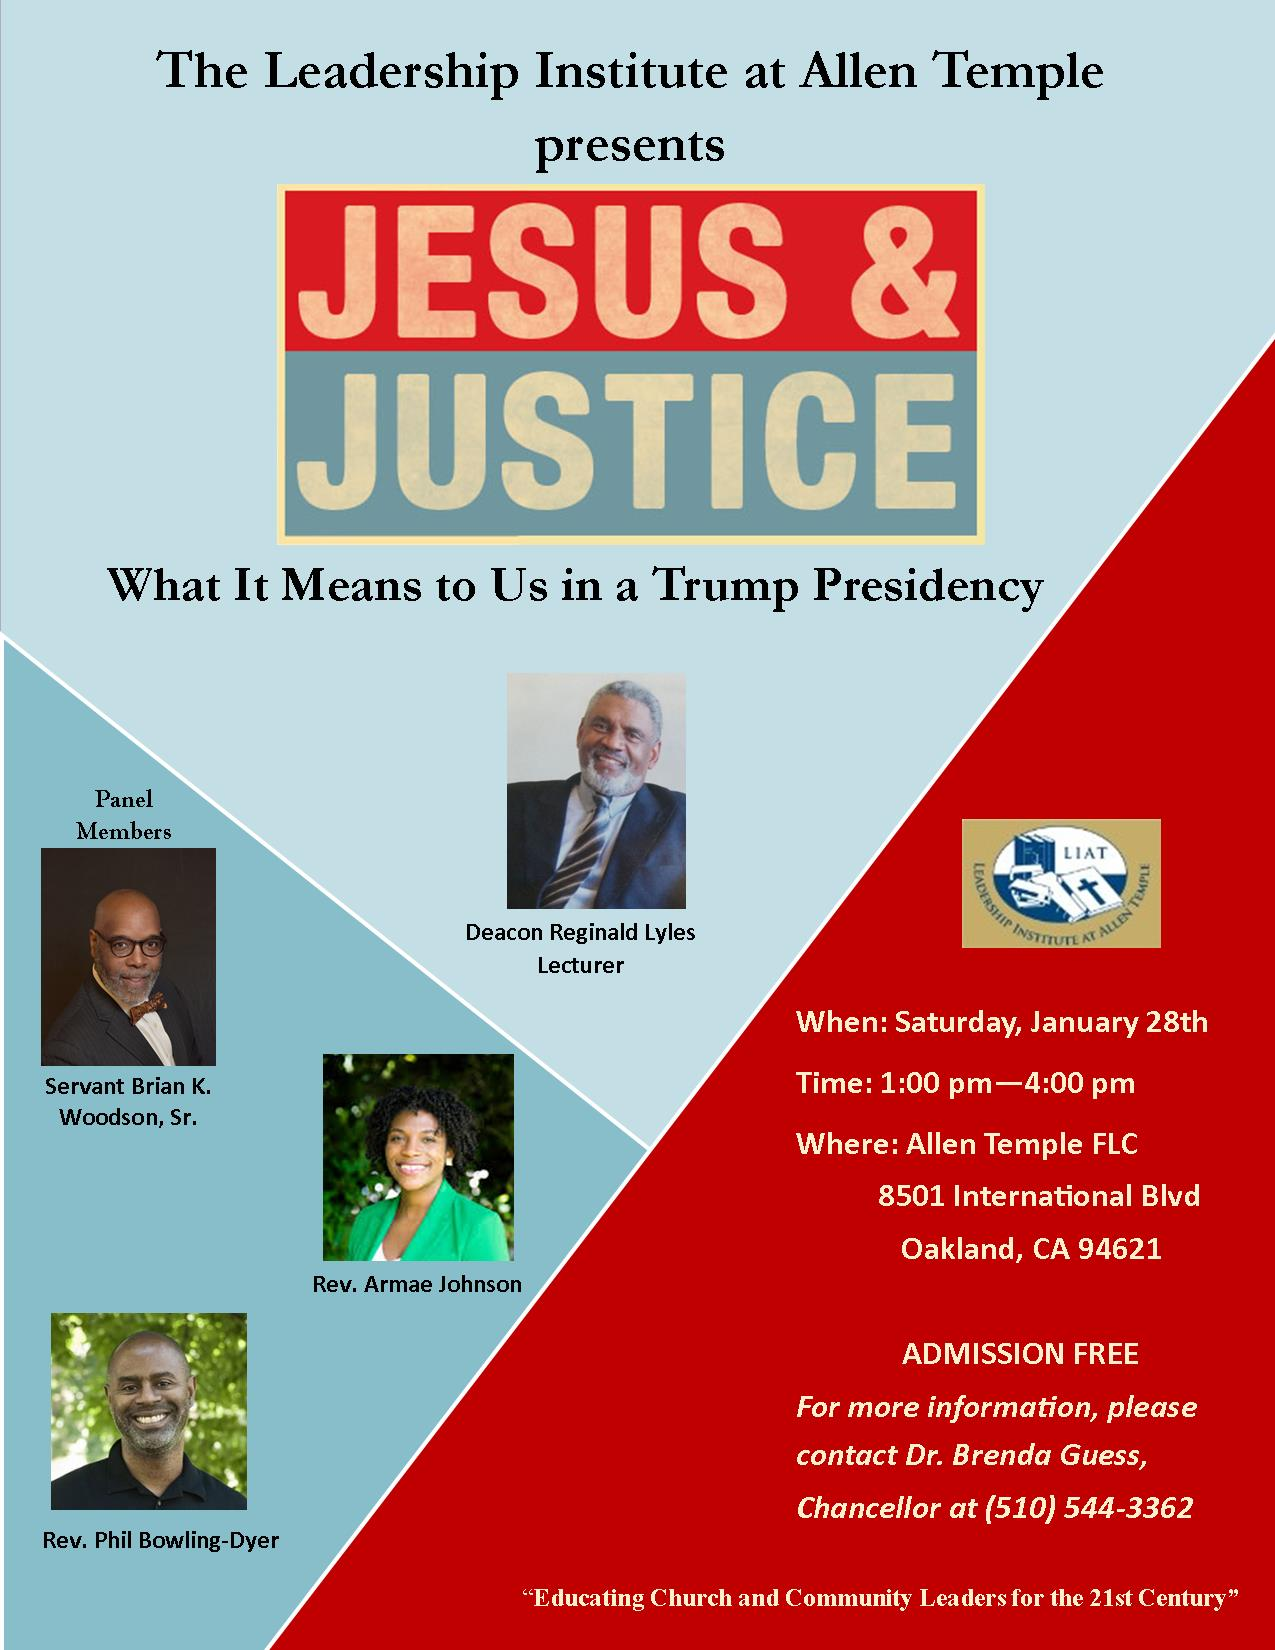 Jesus & Justice: What It Means to Us in a Trump Presidency